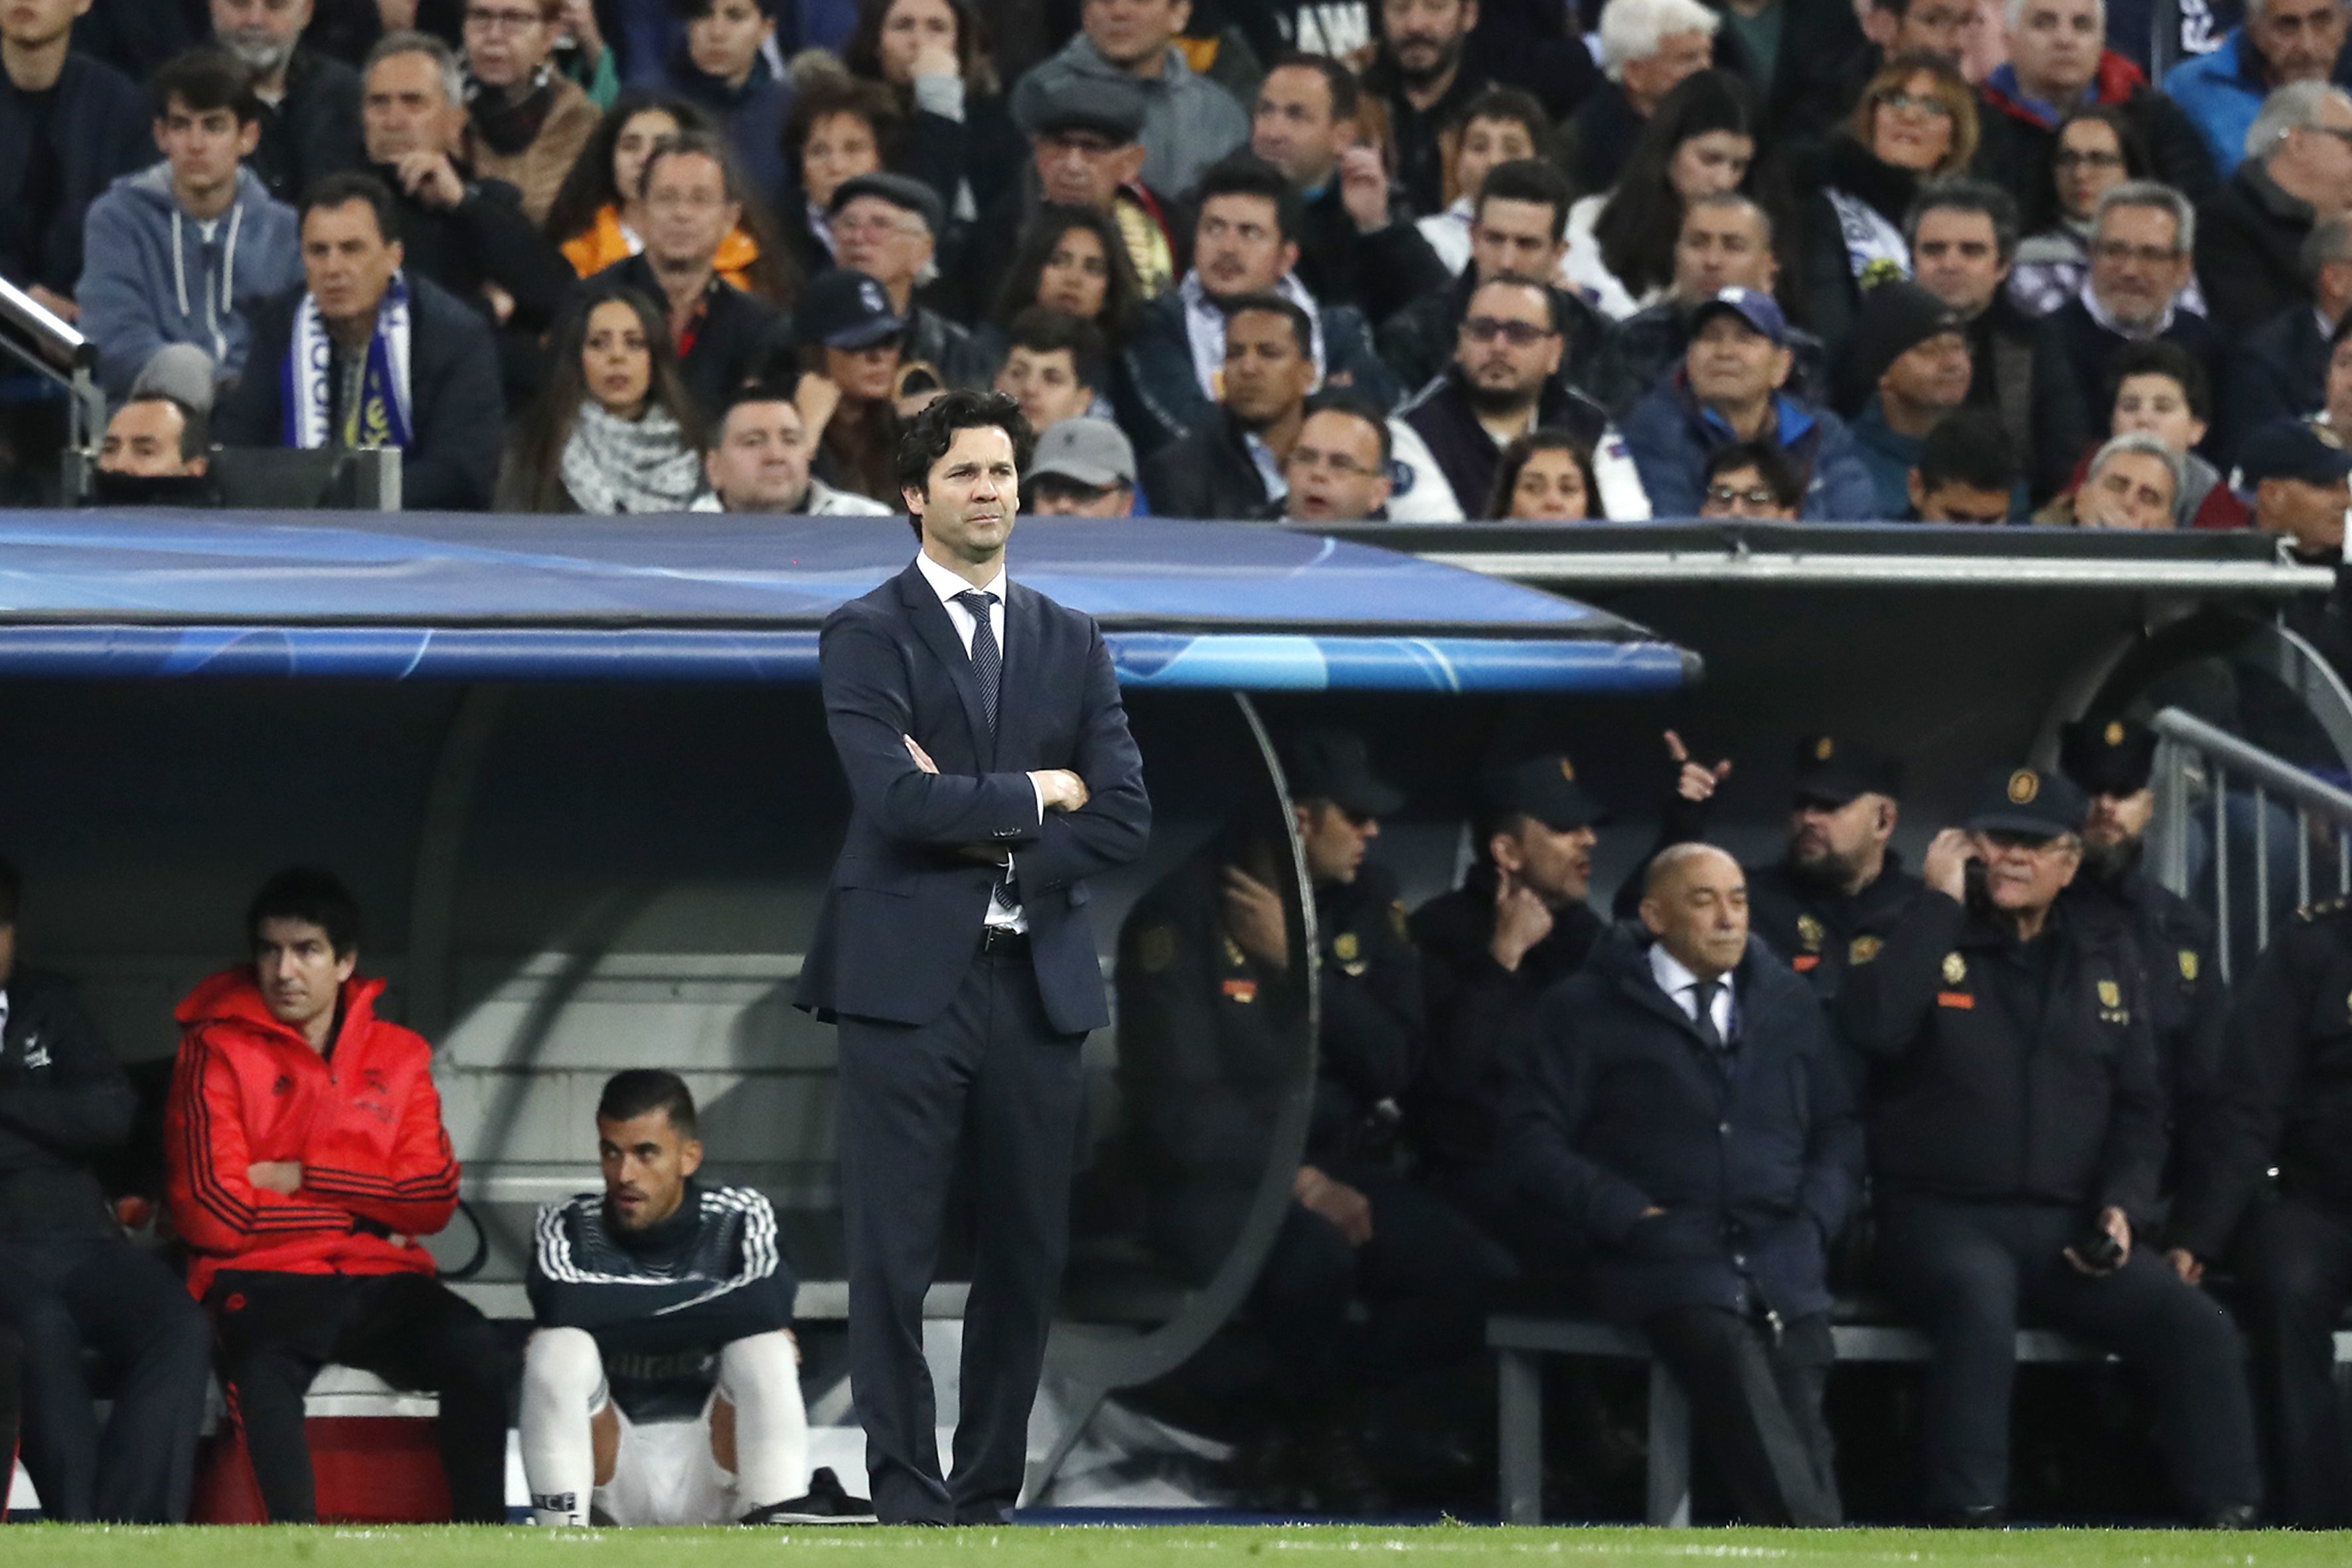 Solari absent as Ramos steamed into Real Madrid players in crisis meeting